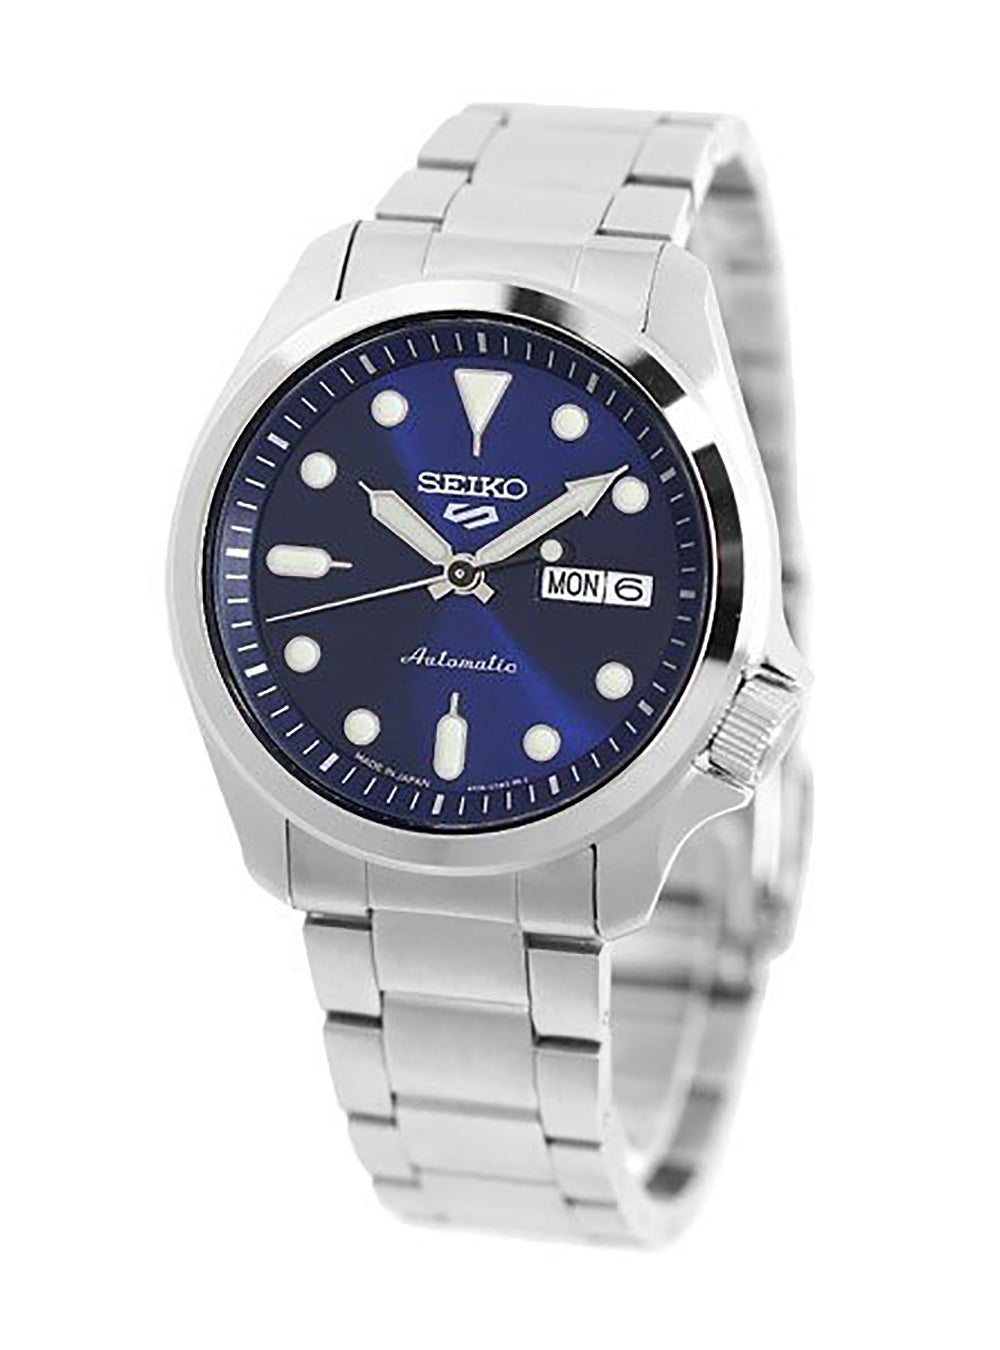 SEIKO 5 SPORTS SBSA043 MADE IN JAPAN JDM